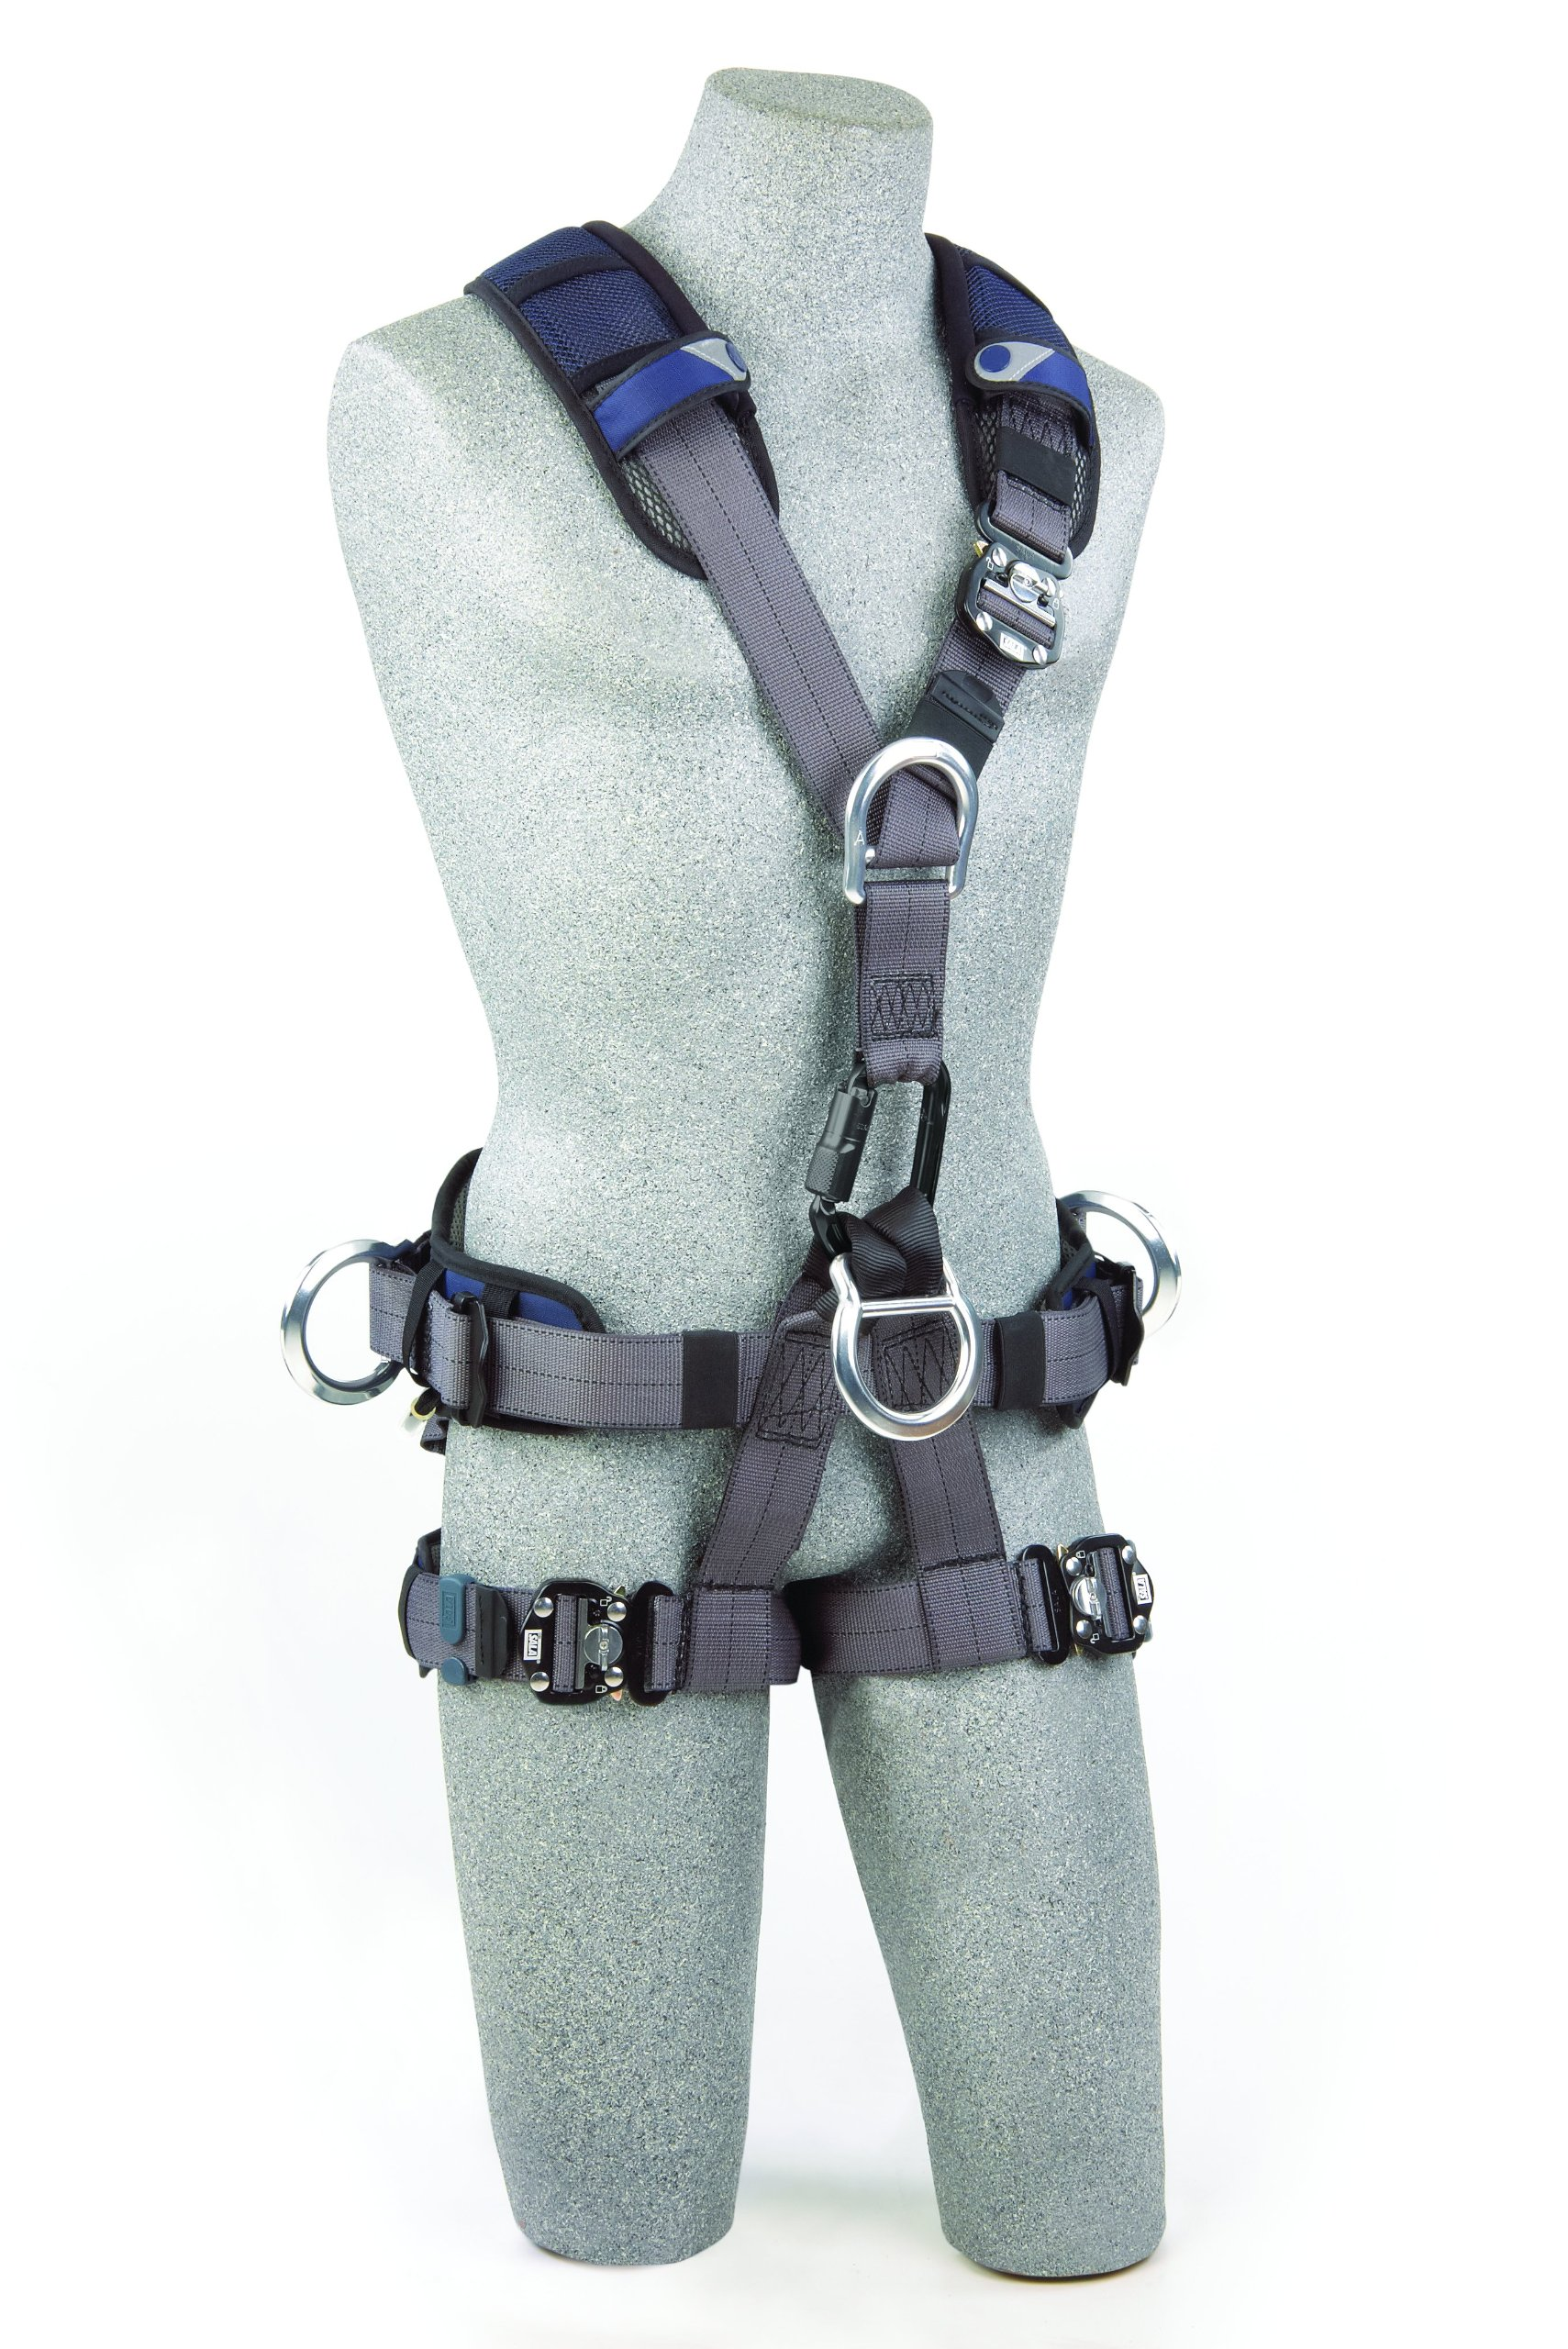 3M DBI-SALA ExoFit NEX 1113346 Full Body Rope Access/Rescue Harness, Alum Back/Front/Suspension D-Rings, Belt w/ Pad/Side D-Rings, Locking QC Leg Straps, Medium, Blue/Grey by 3M Fall Protection Business (Image #3)